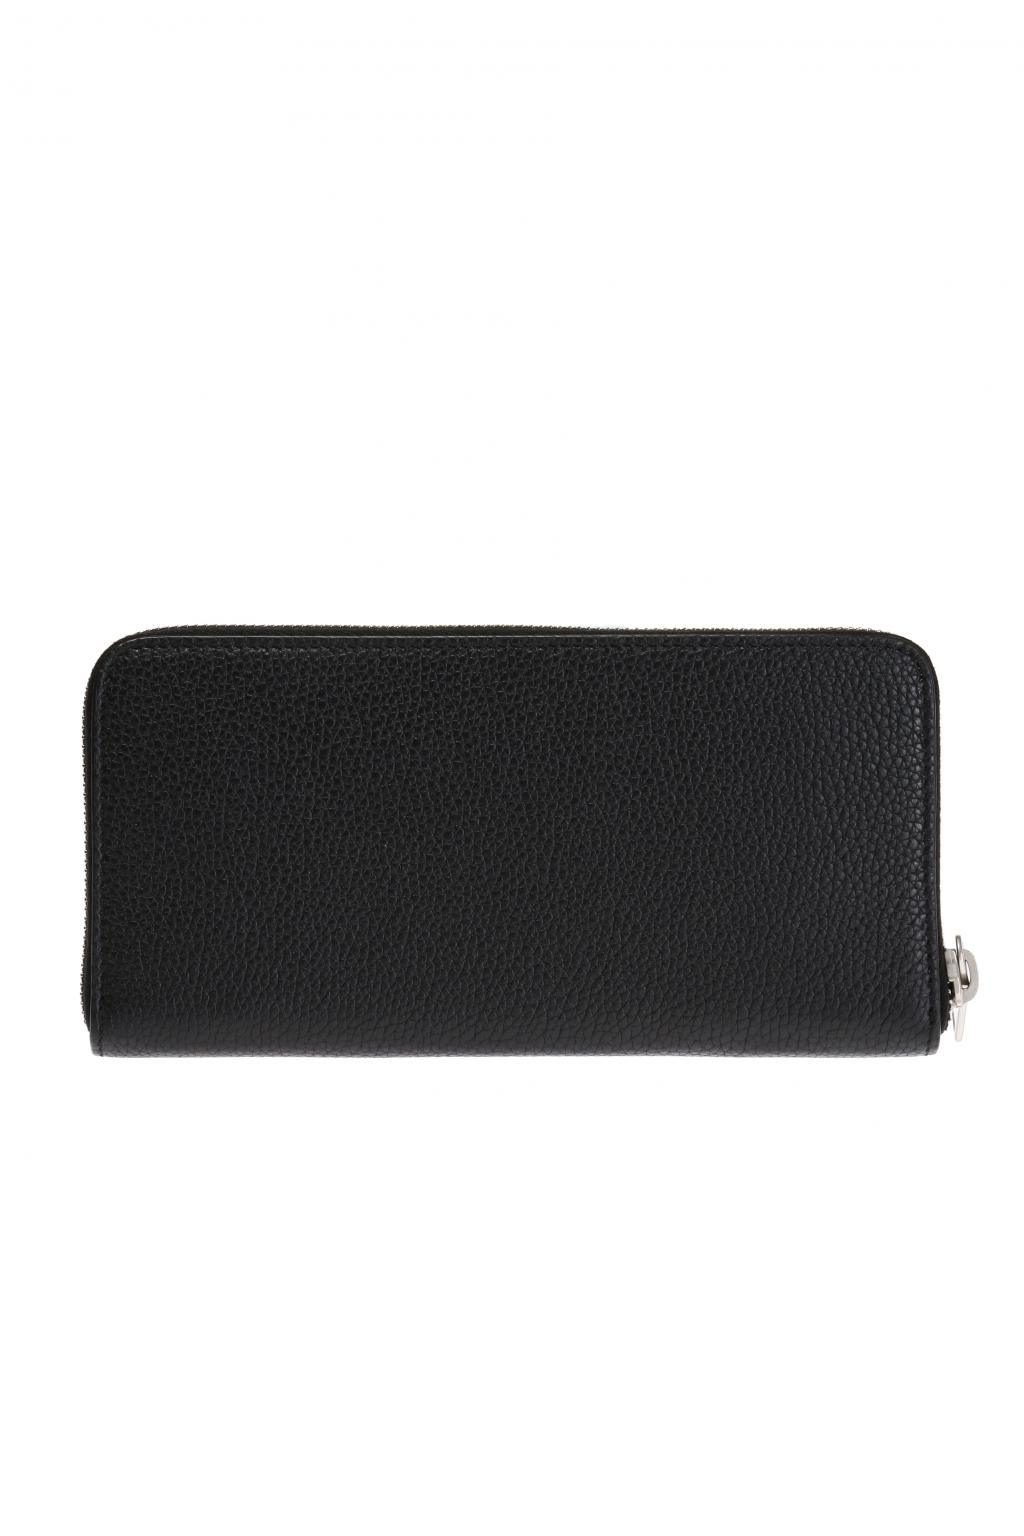 Saint Laurent Textured wallet